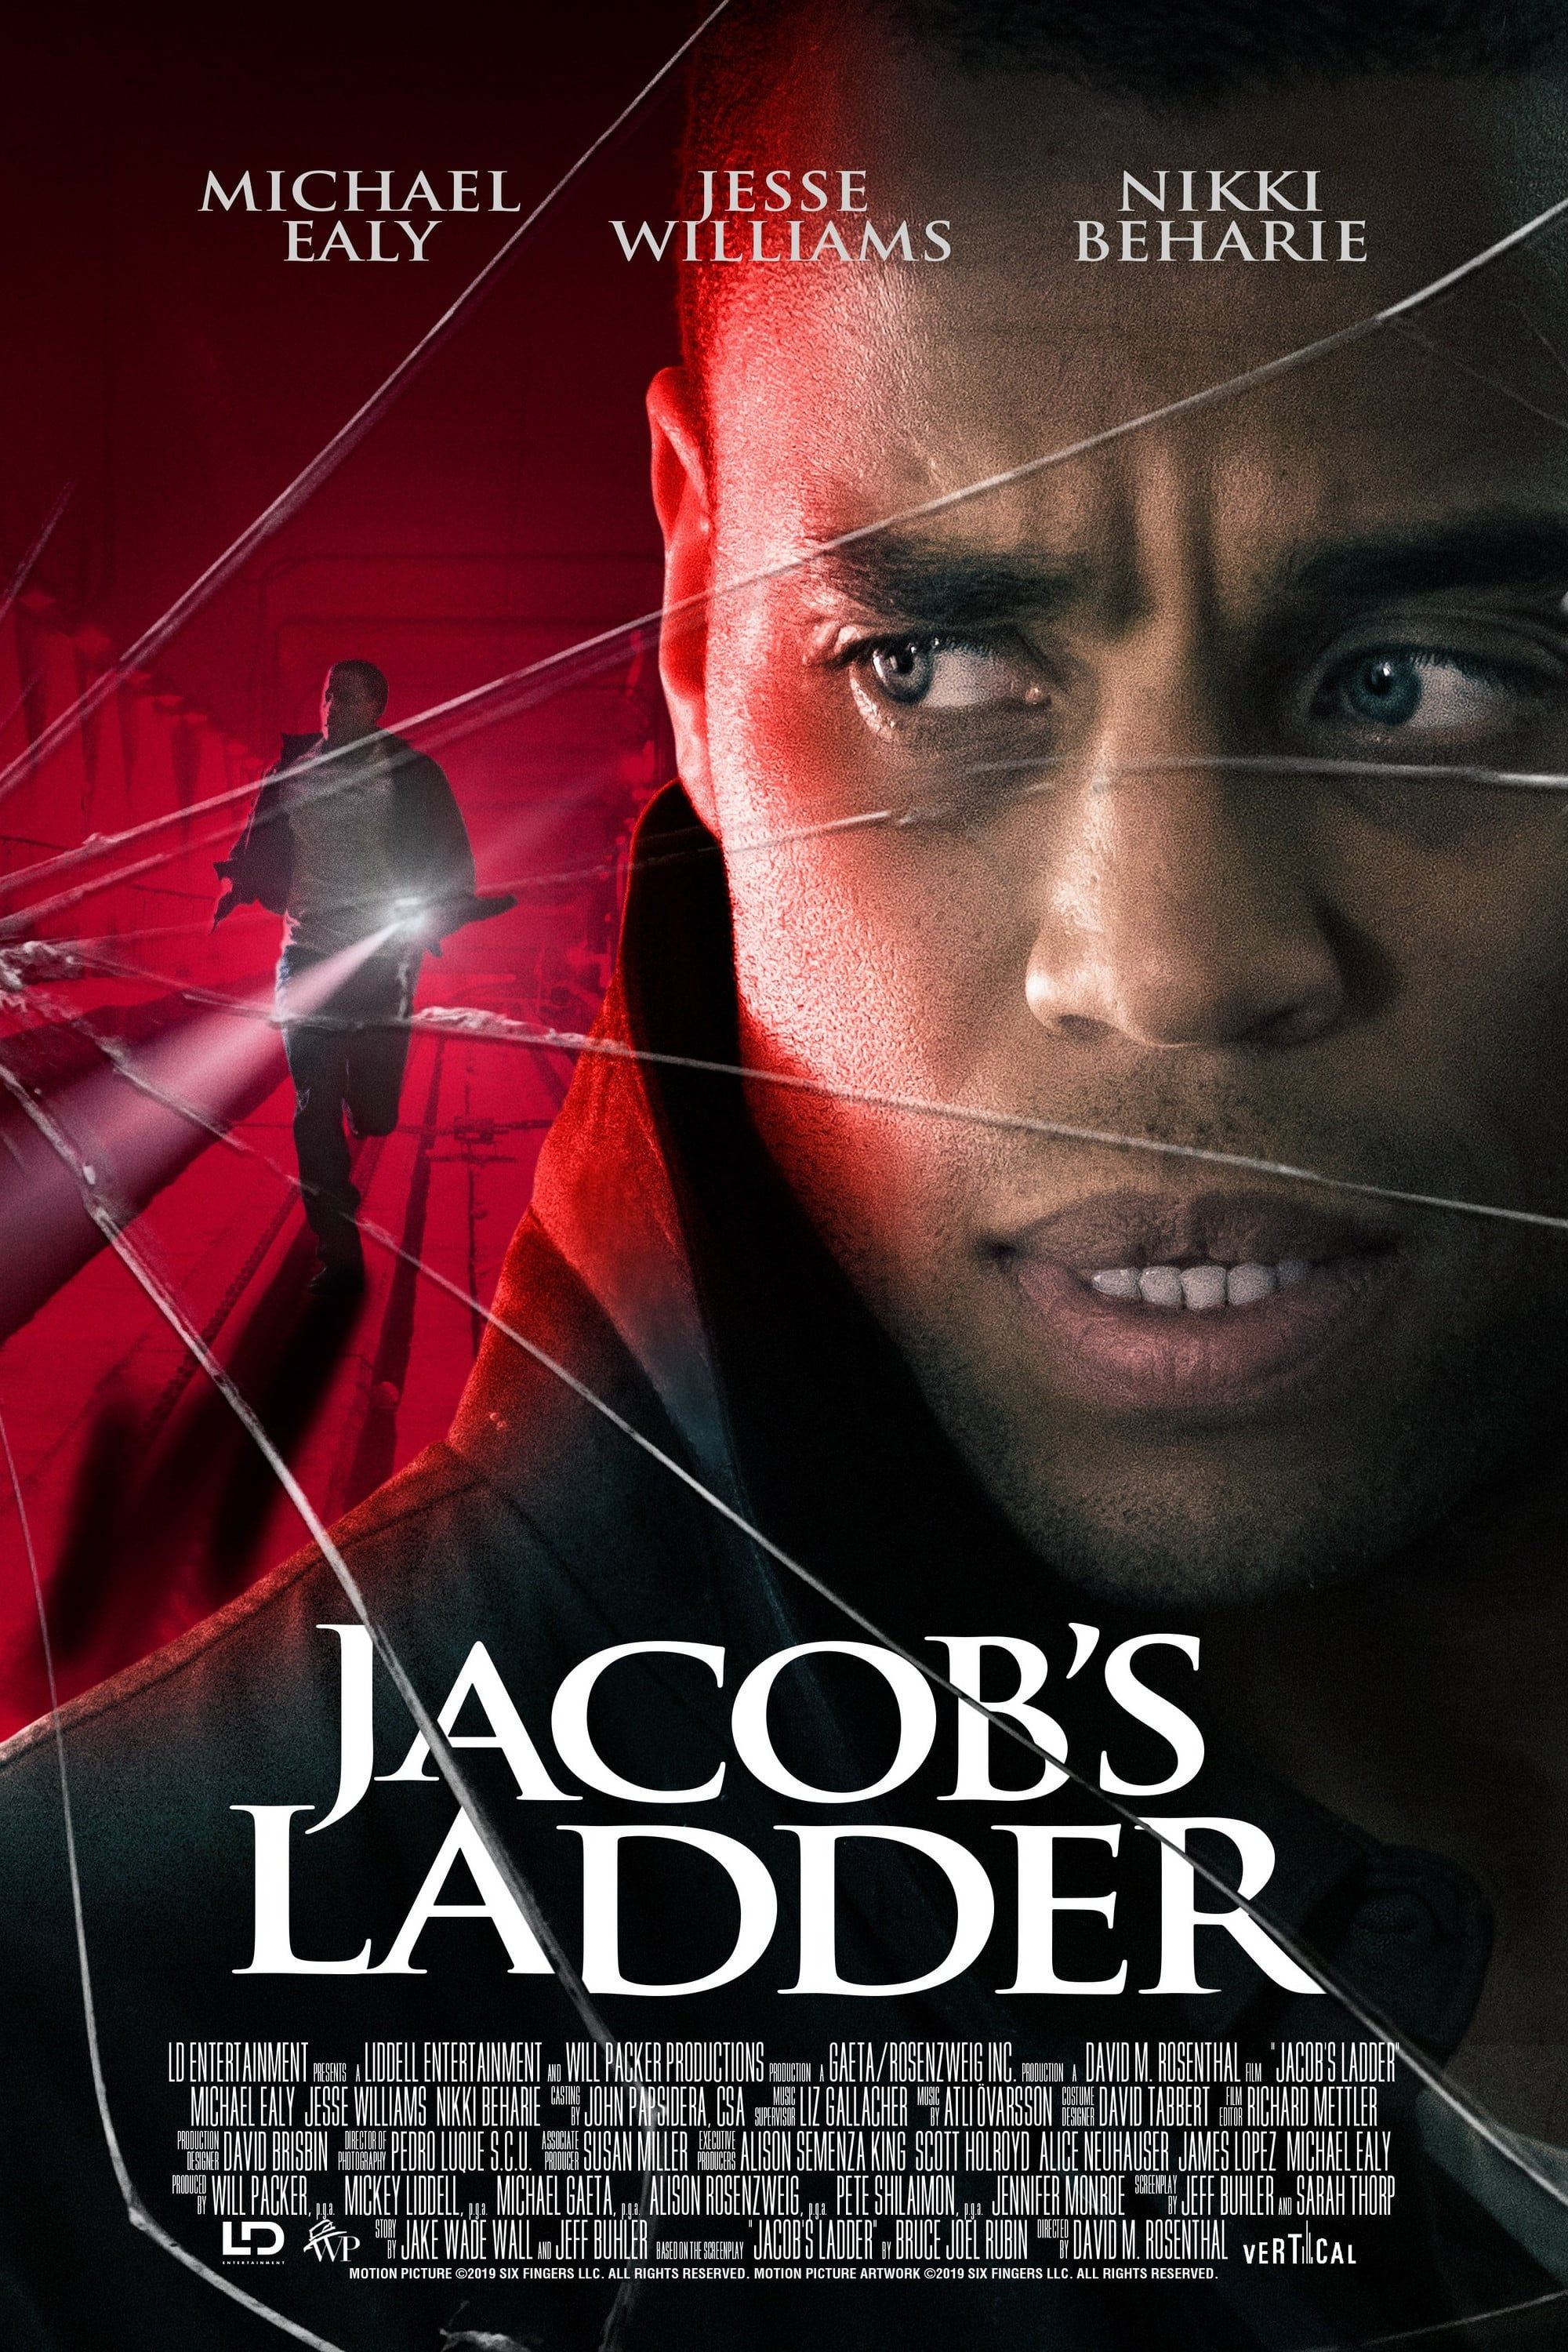 Online Jacob S Ladder 8942 Pelicula Gratis Espanol 2019 Jacob S Ladder 2019 Aka Jacob S Ladder Fullmovie Fi Jacob S Ladder Michael Ealy Tim Robbins